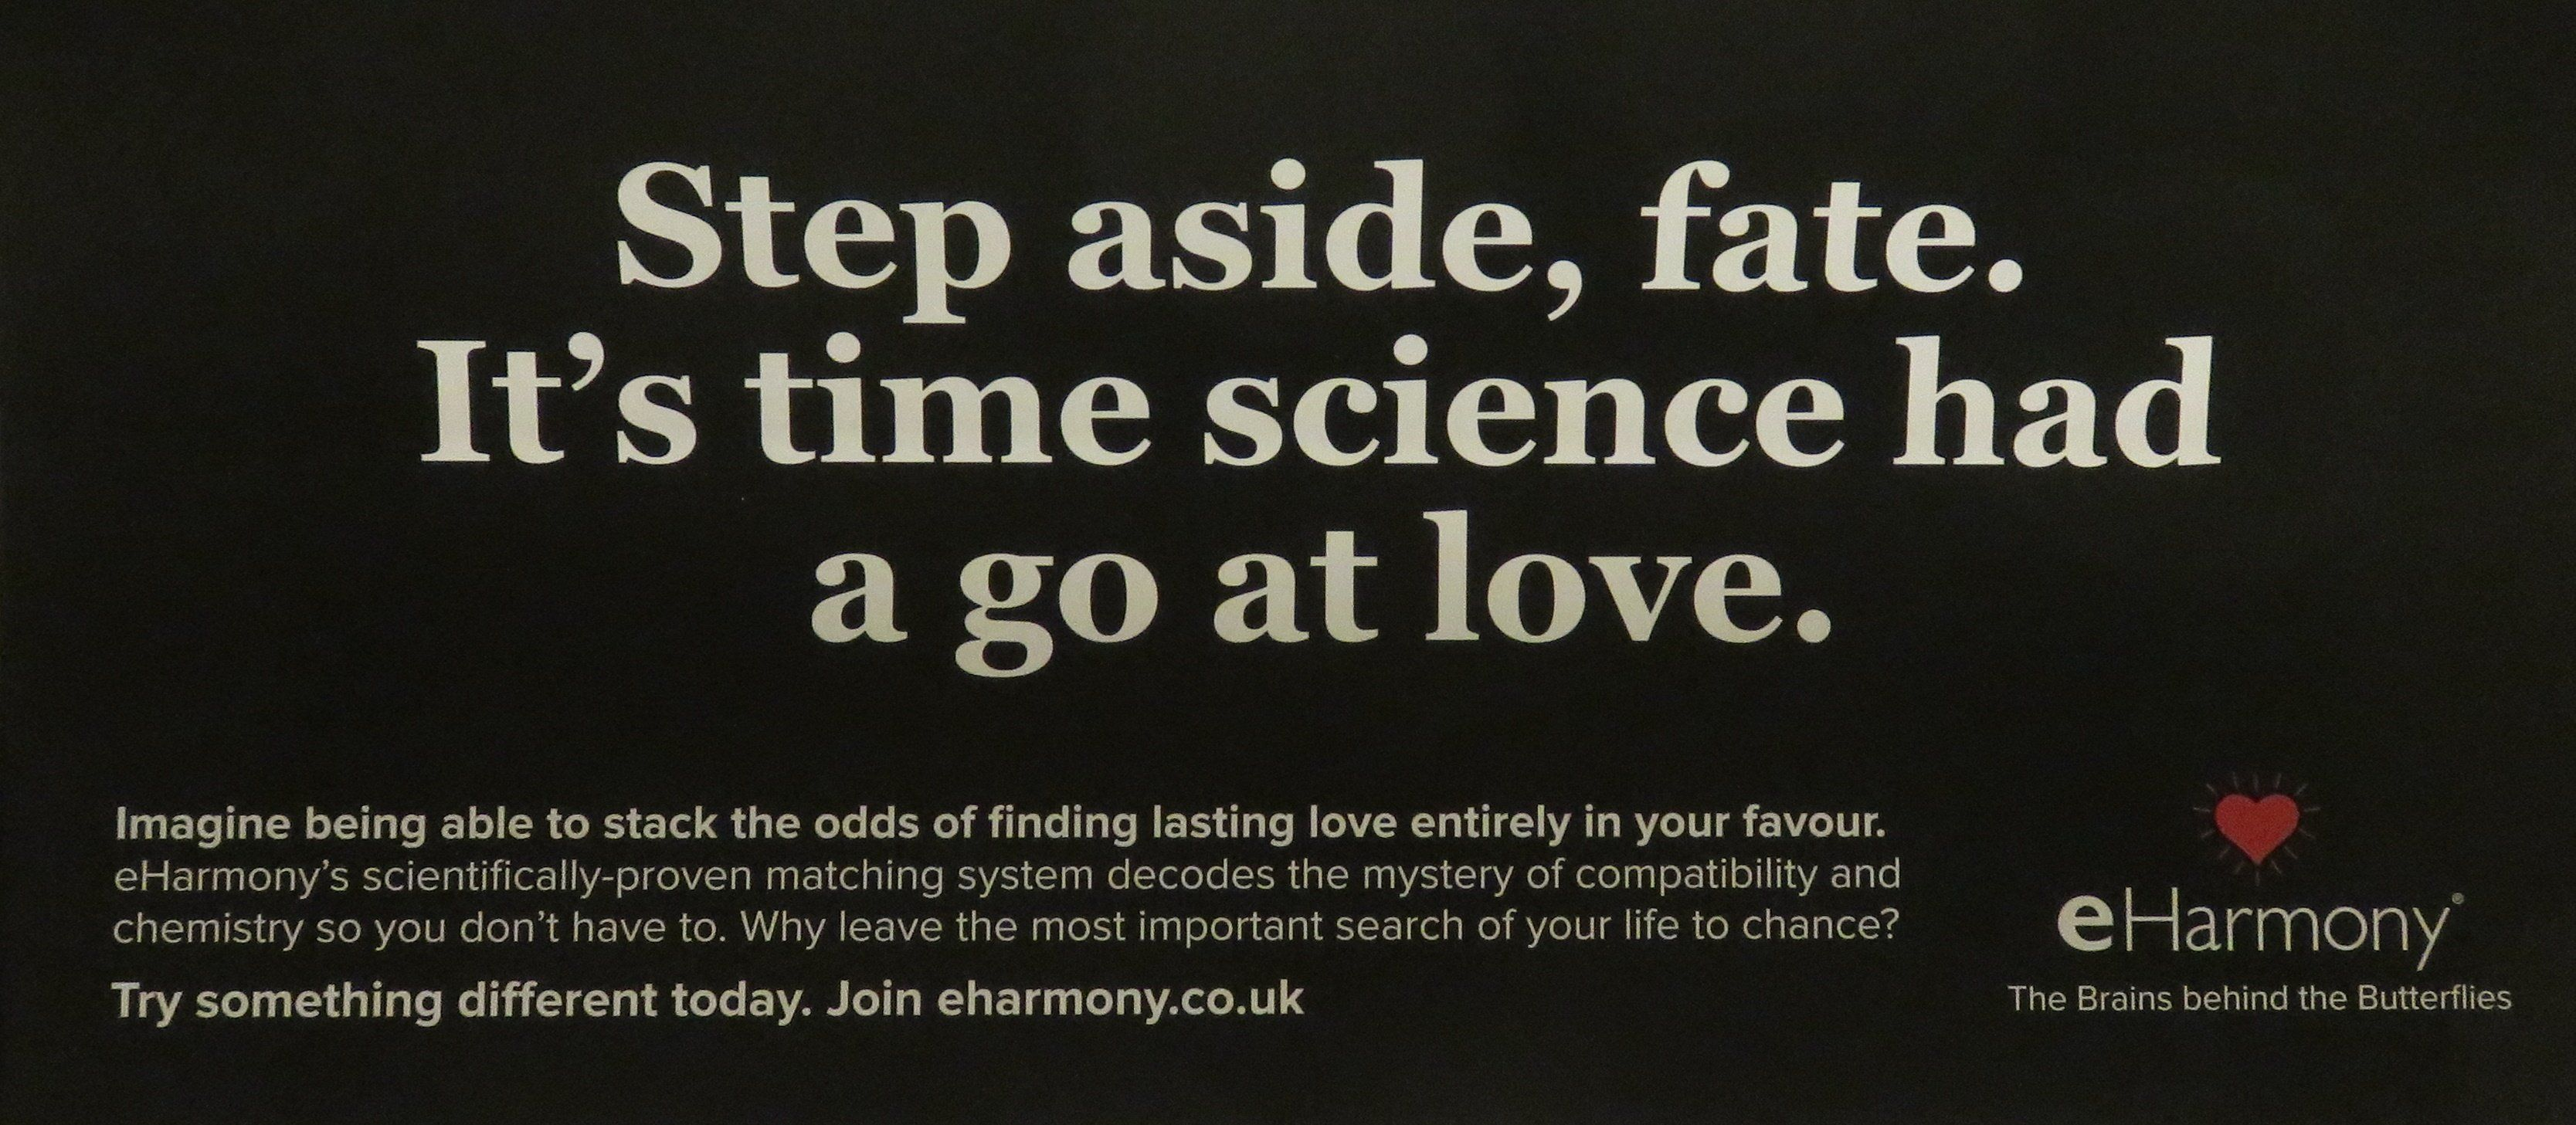 Advert For Dating Website eHarmony Banned For 'Misleading' Scientific